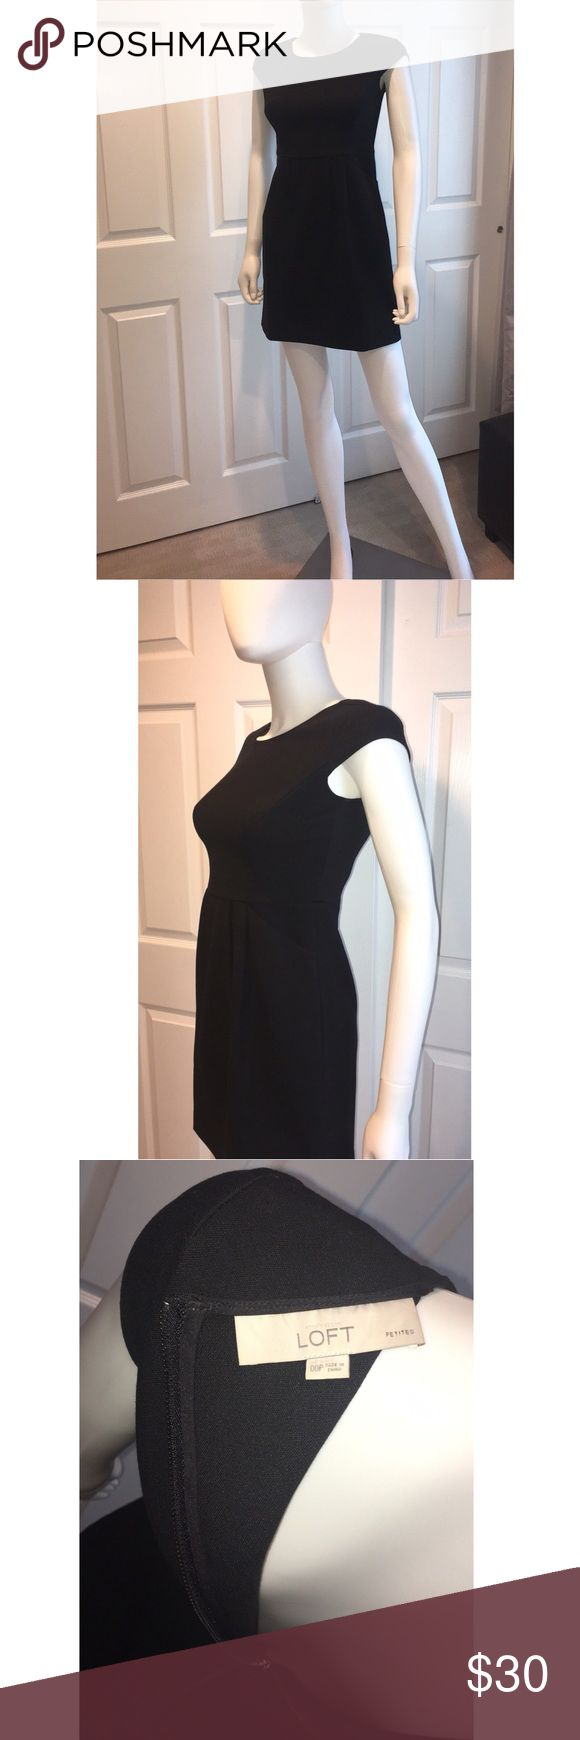 Loft Little Black Dress 00Patite  W/ Pockets Great lil black dress for casual outings or business.  Lightly used Cap Sleeve 72%Polyester 27% Rayon 1% Spandex LOFT Dresses Midi